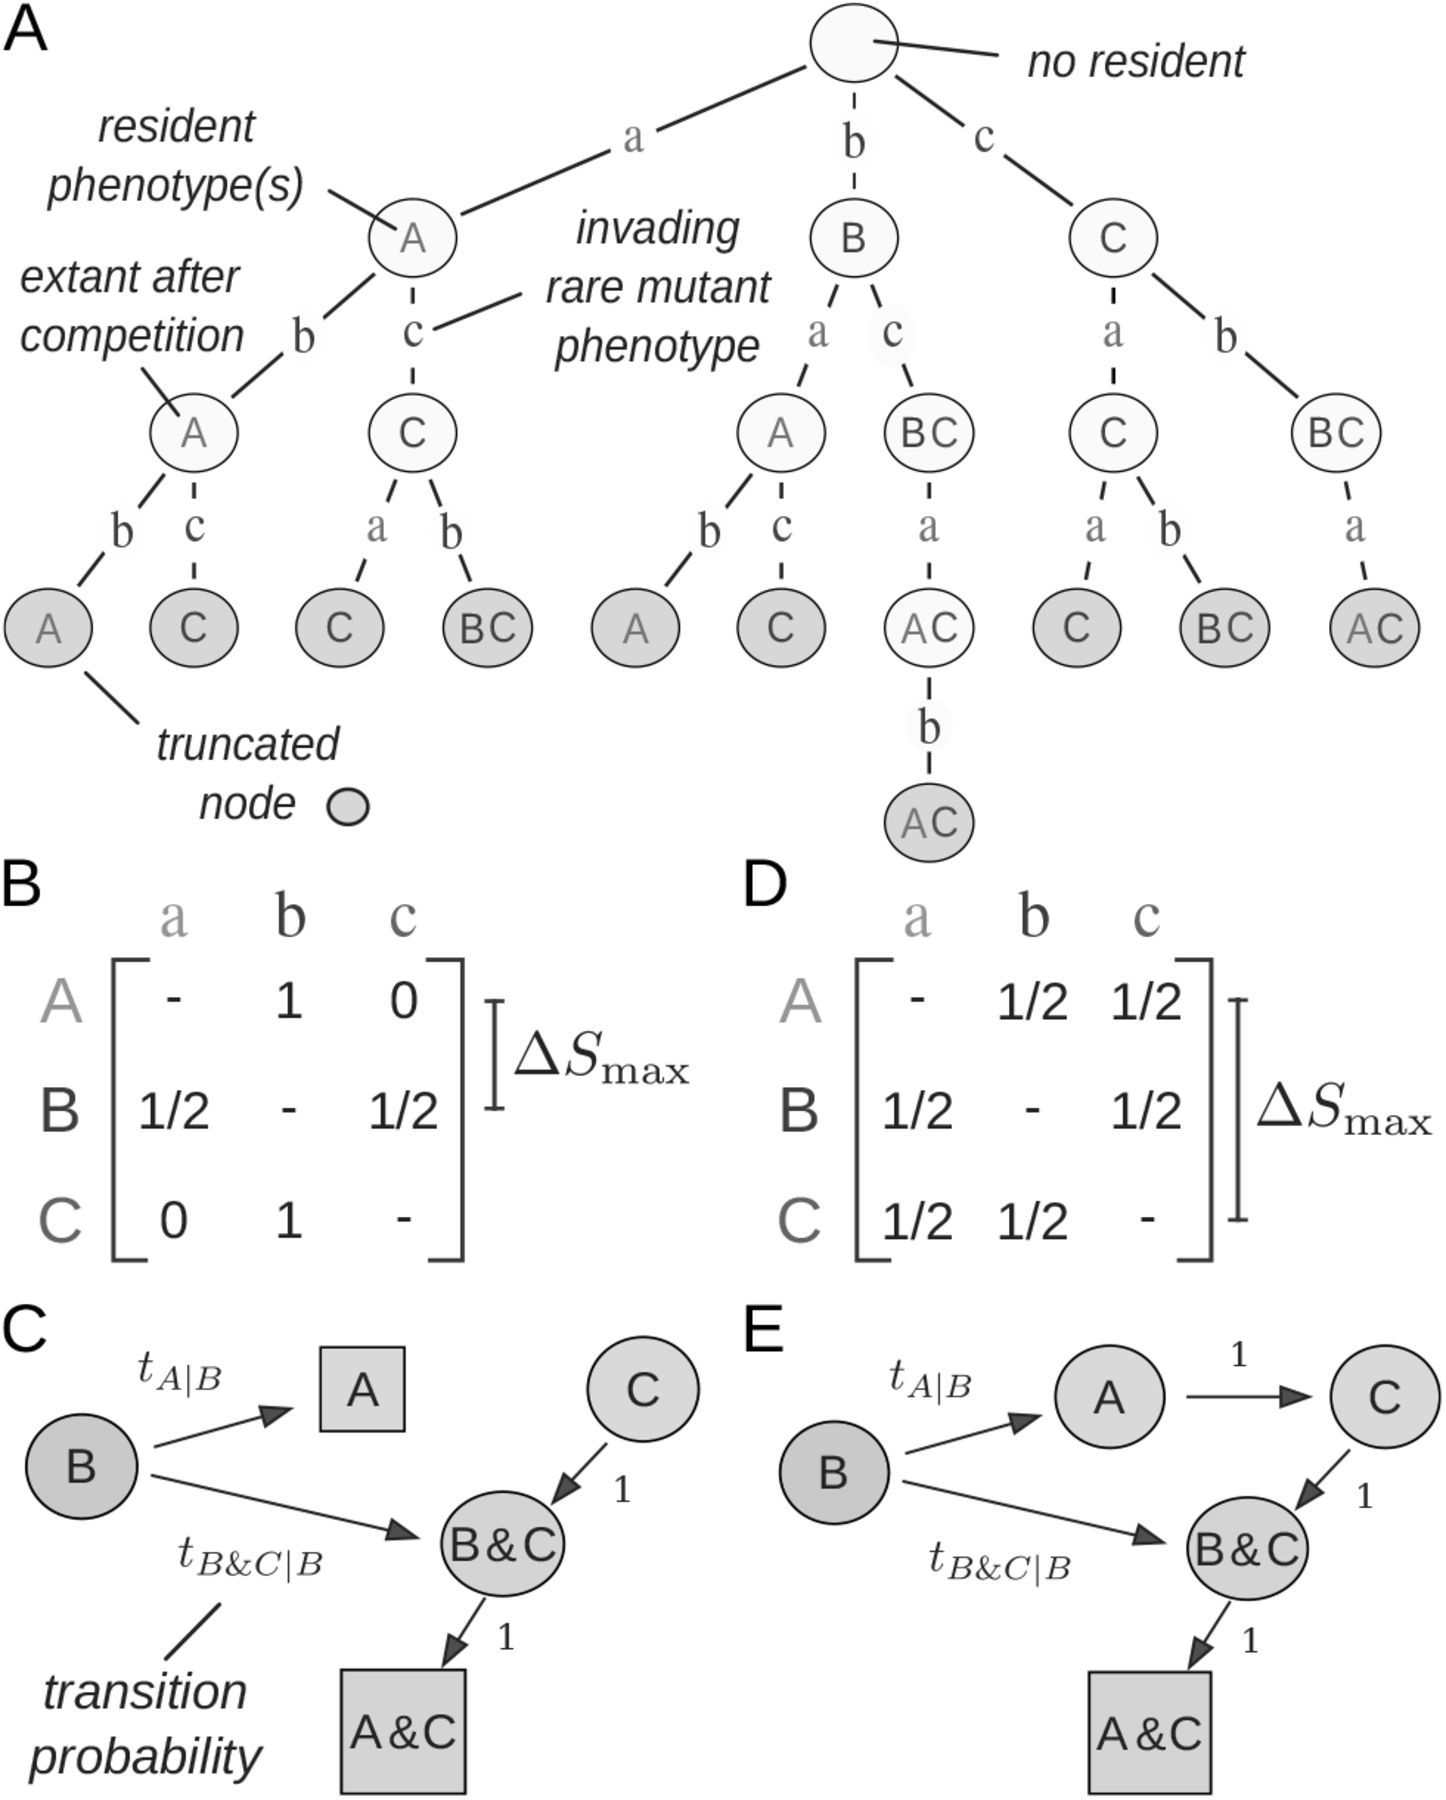 Predicting metabolic adaptation from networks of mutational paths